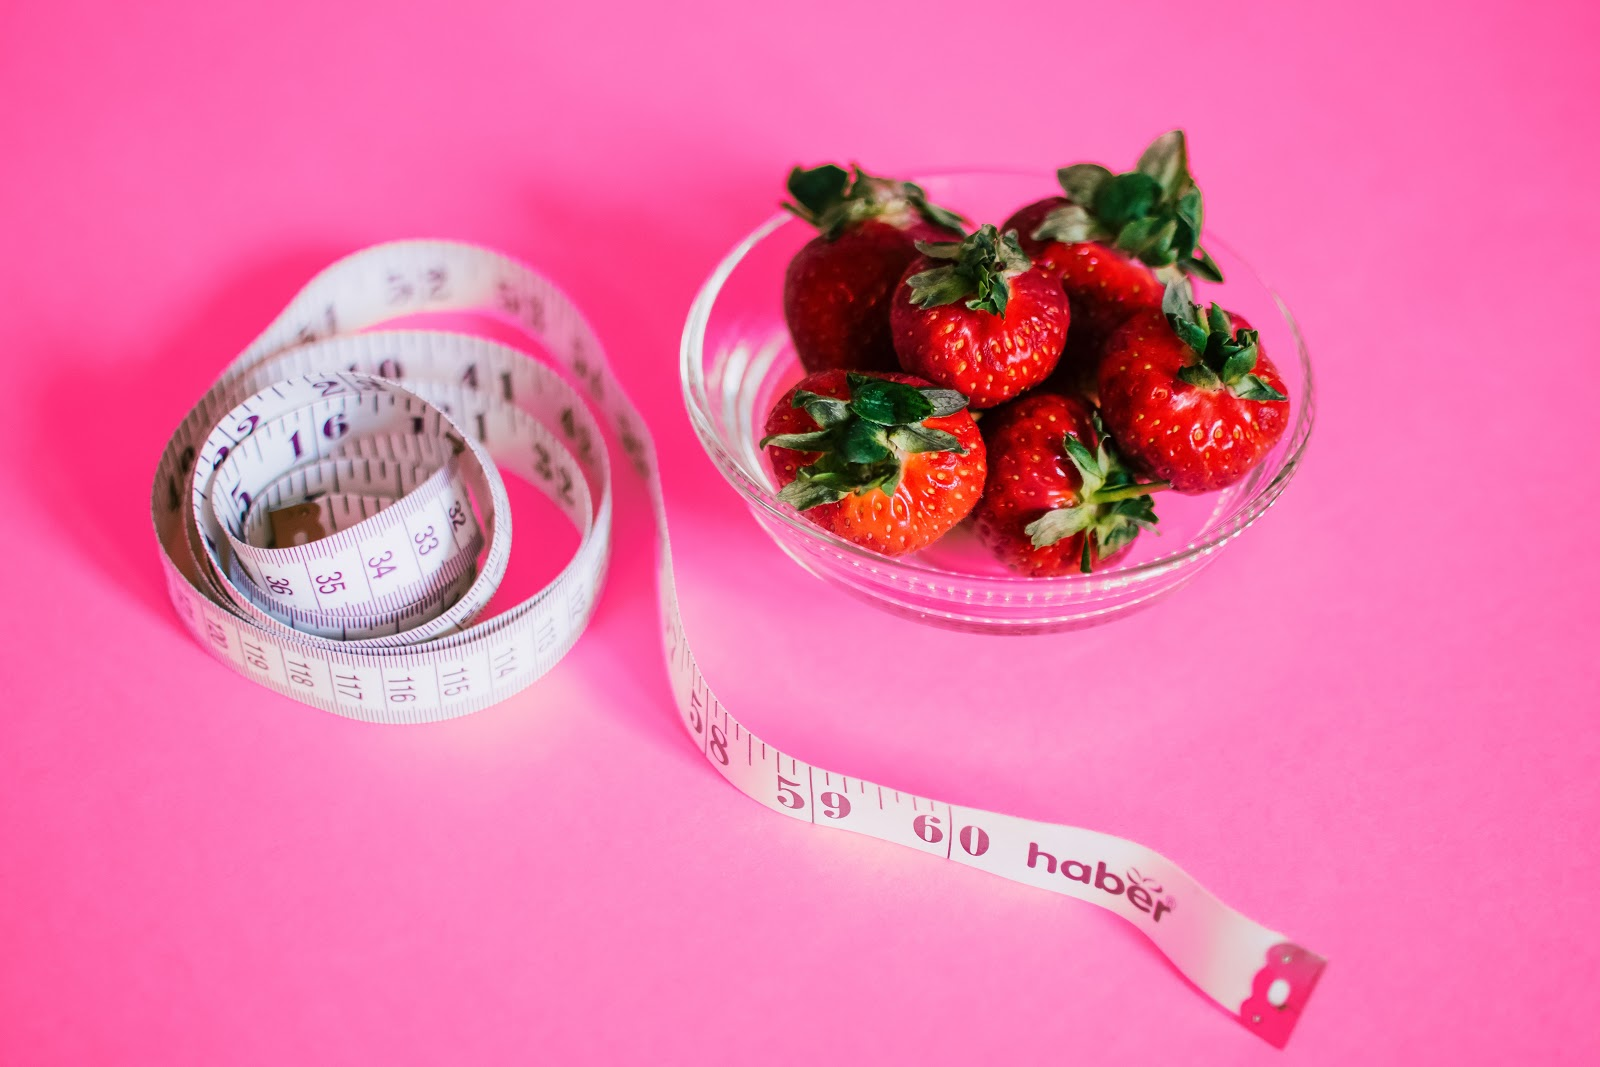 A waist measuring tap next to a bowl of strawberries